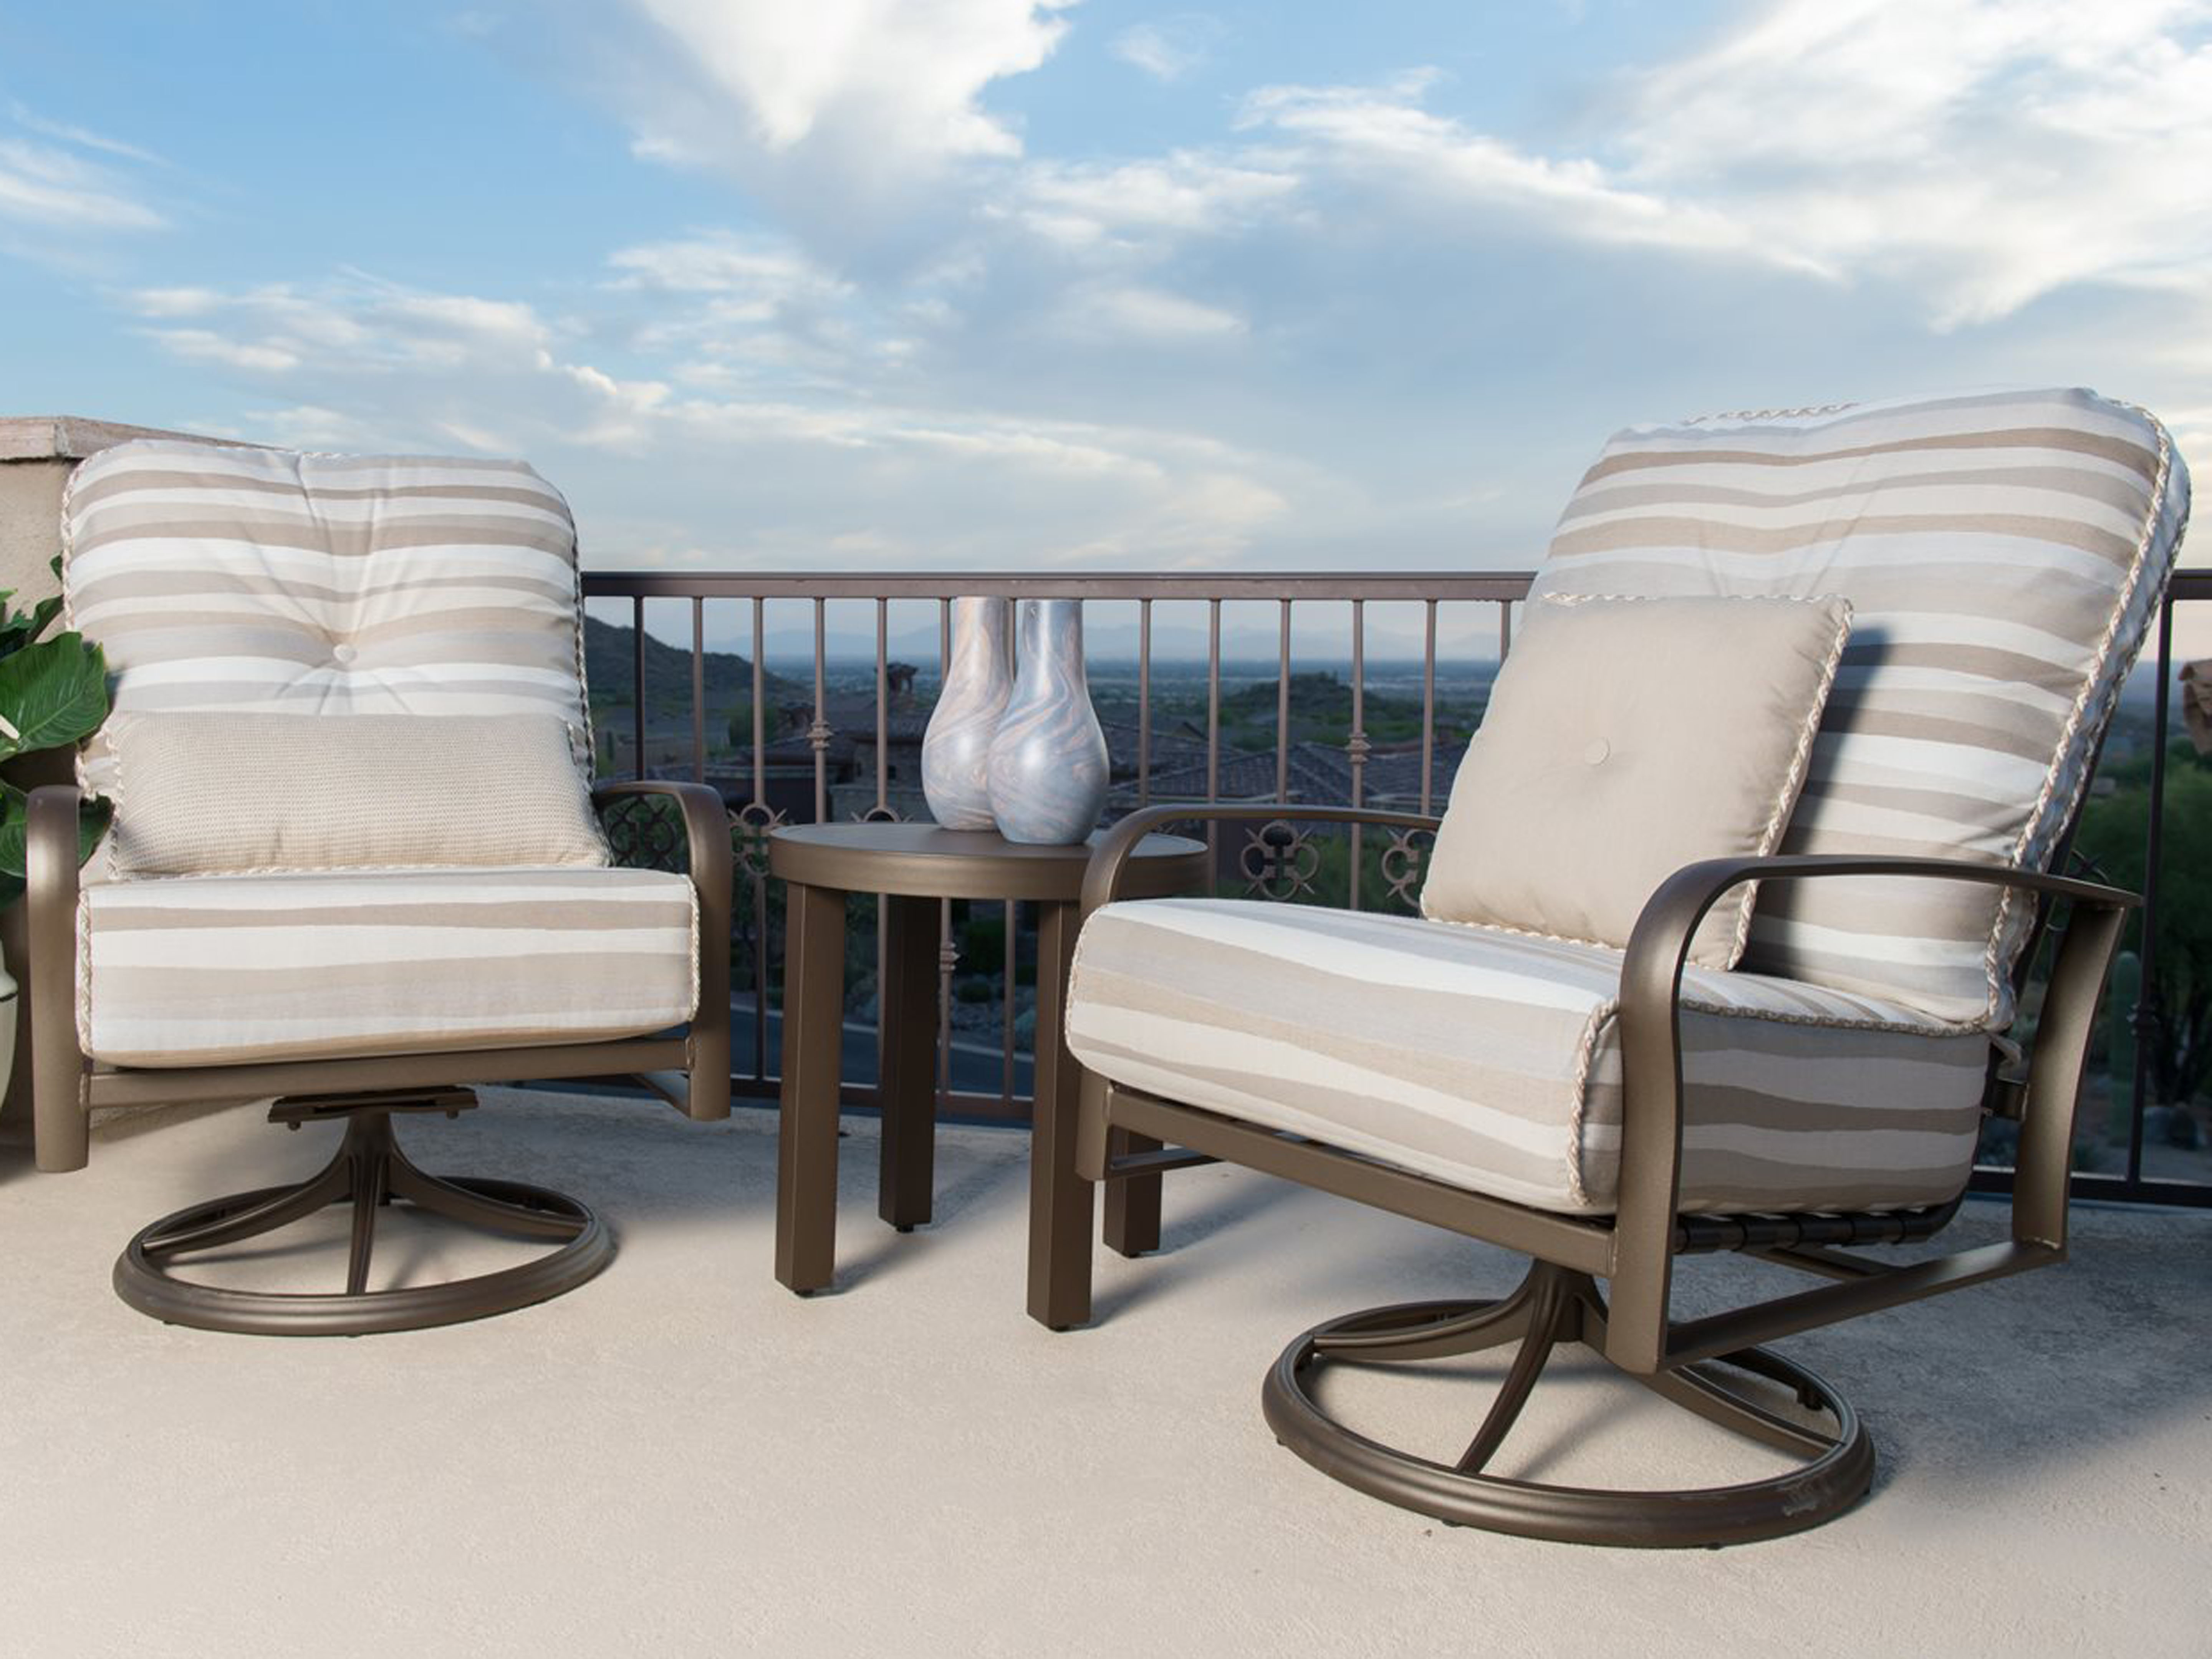 Woodard Fremont Cushion Aluminum Lounge Set  Fremntlngset. Patio Ideas Outdoor Kitchen. Patio Designs Flagstone. Patio Contractors In Houston Tx. Backyard Patio Design With Pool. Flagstone Patio Fargo Nd. Patio Swing Trinidad. Patio Blocks And Stones. Patio Paver Craft Patterns